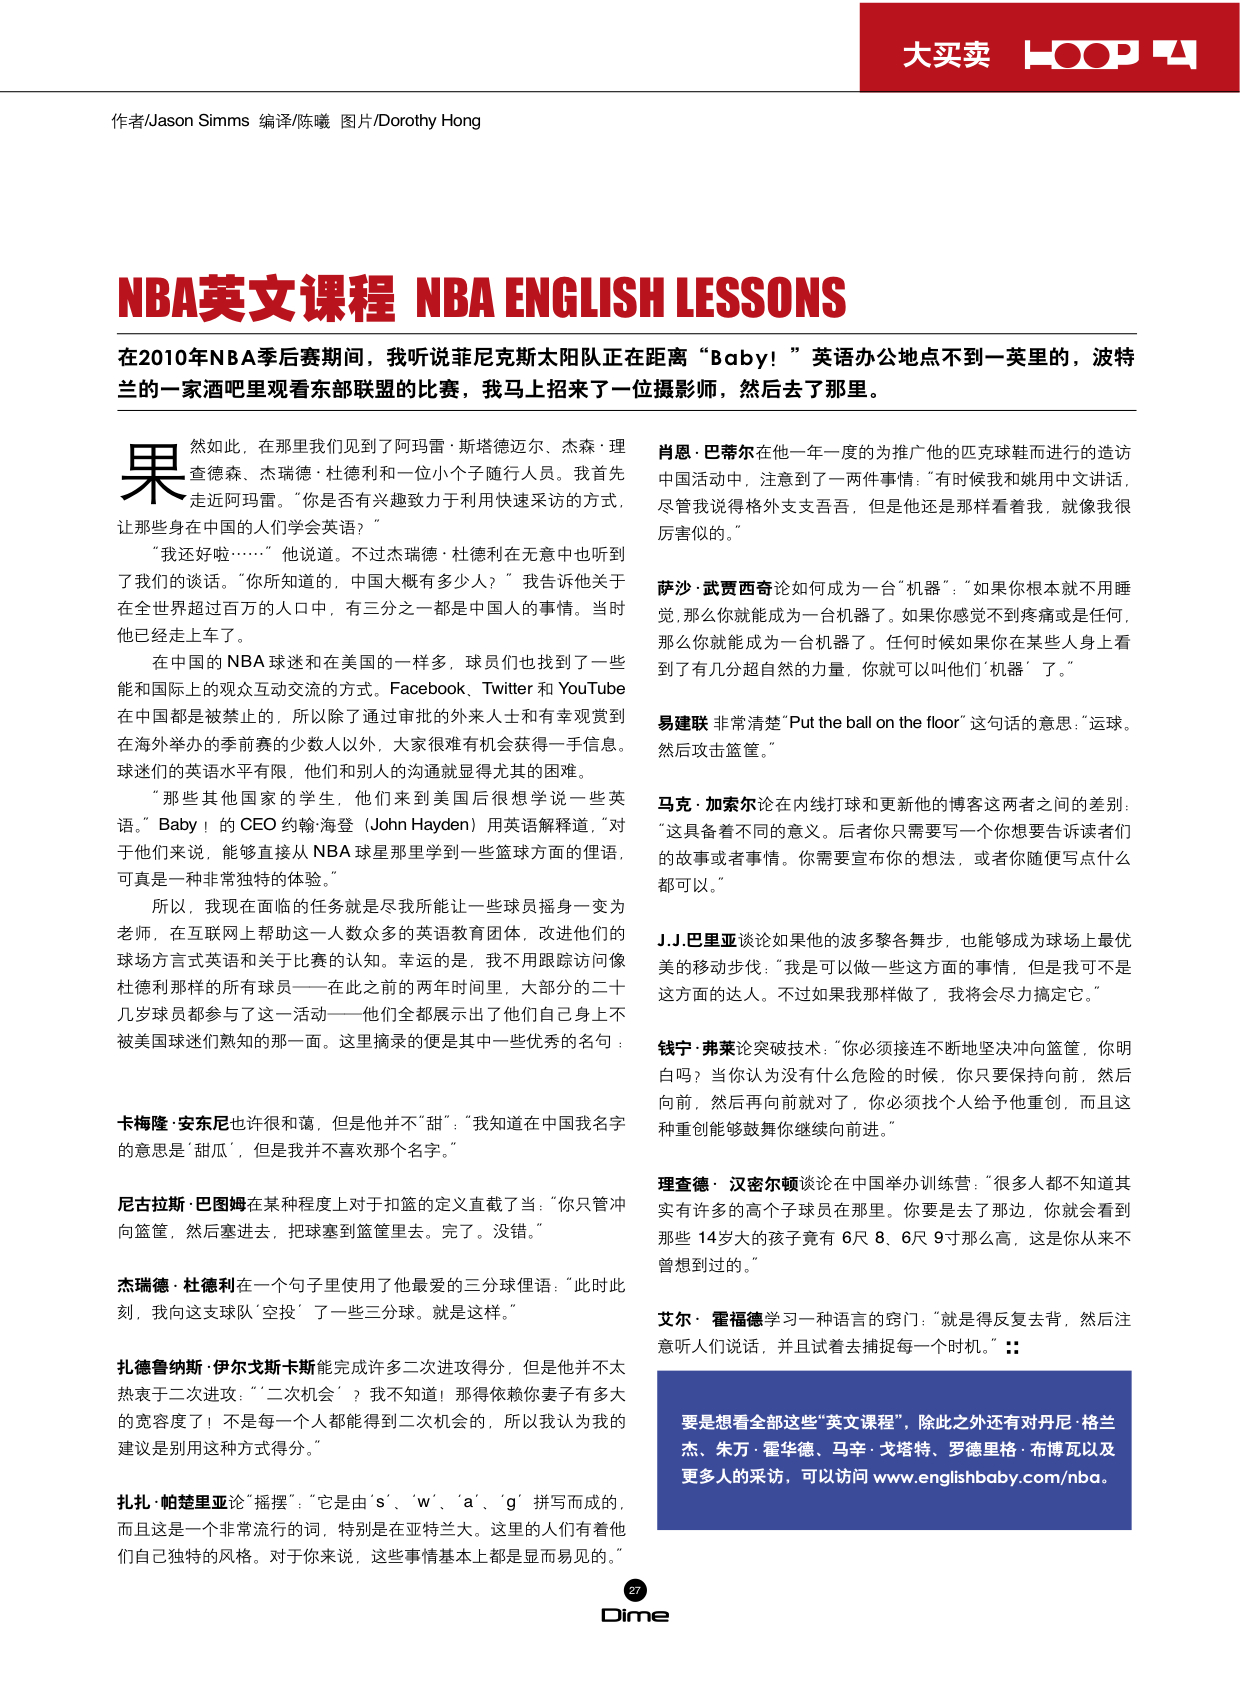 NBA English Lessons